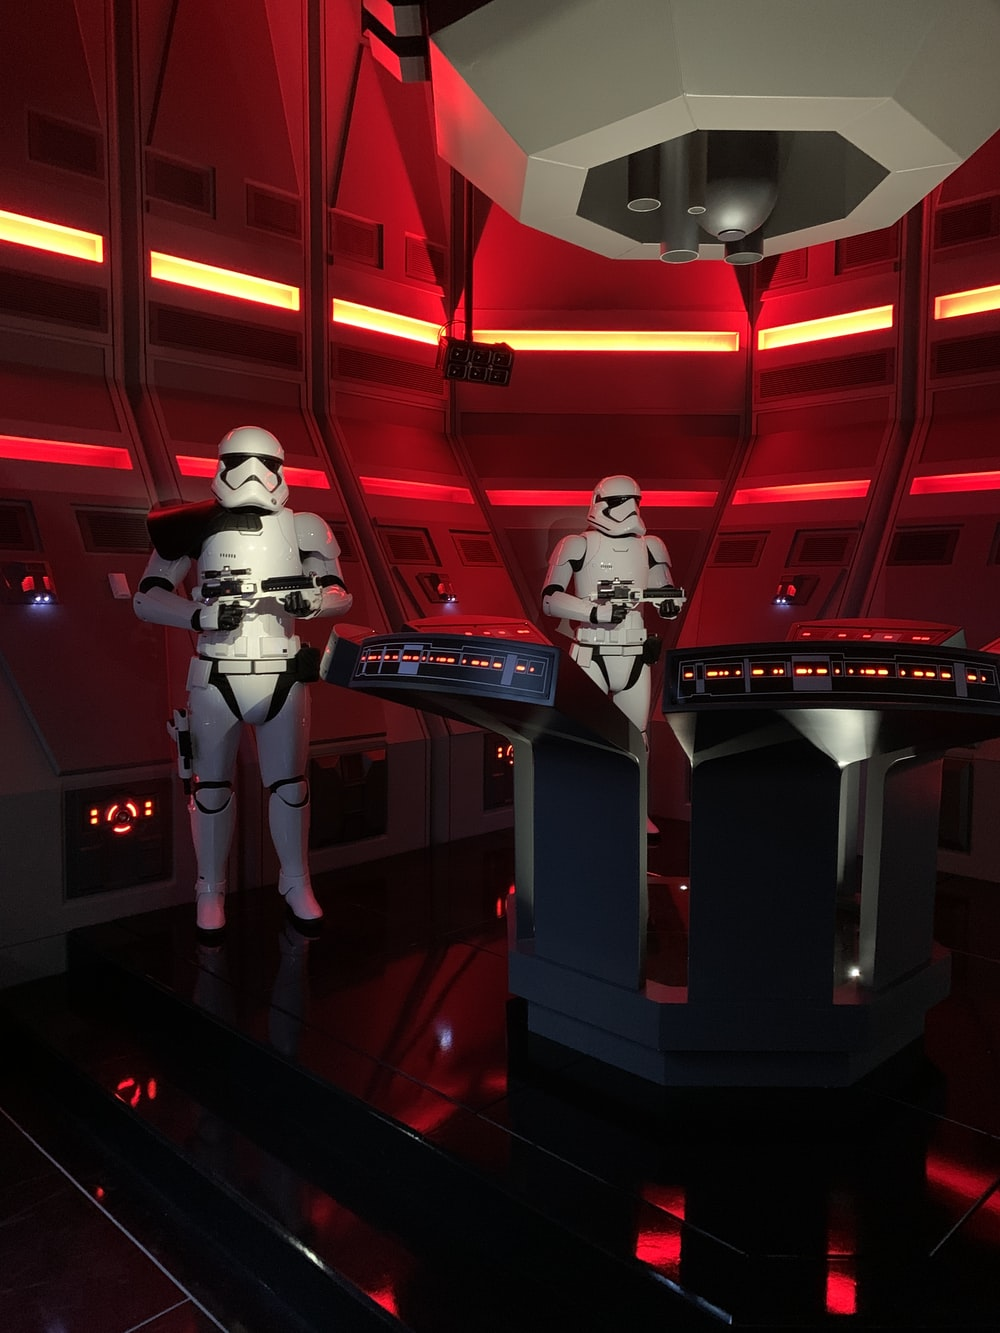 two Star Wars Storm Troopers guard the cockpit